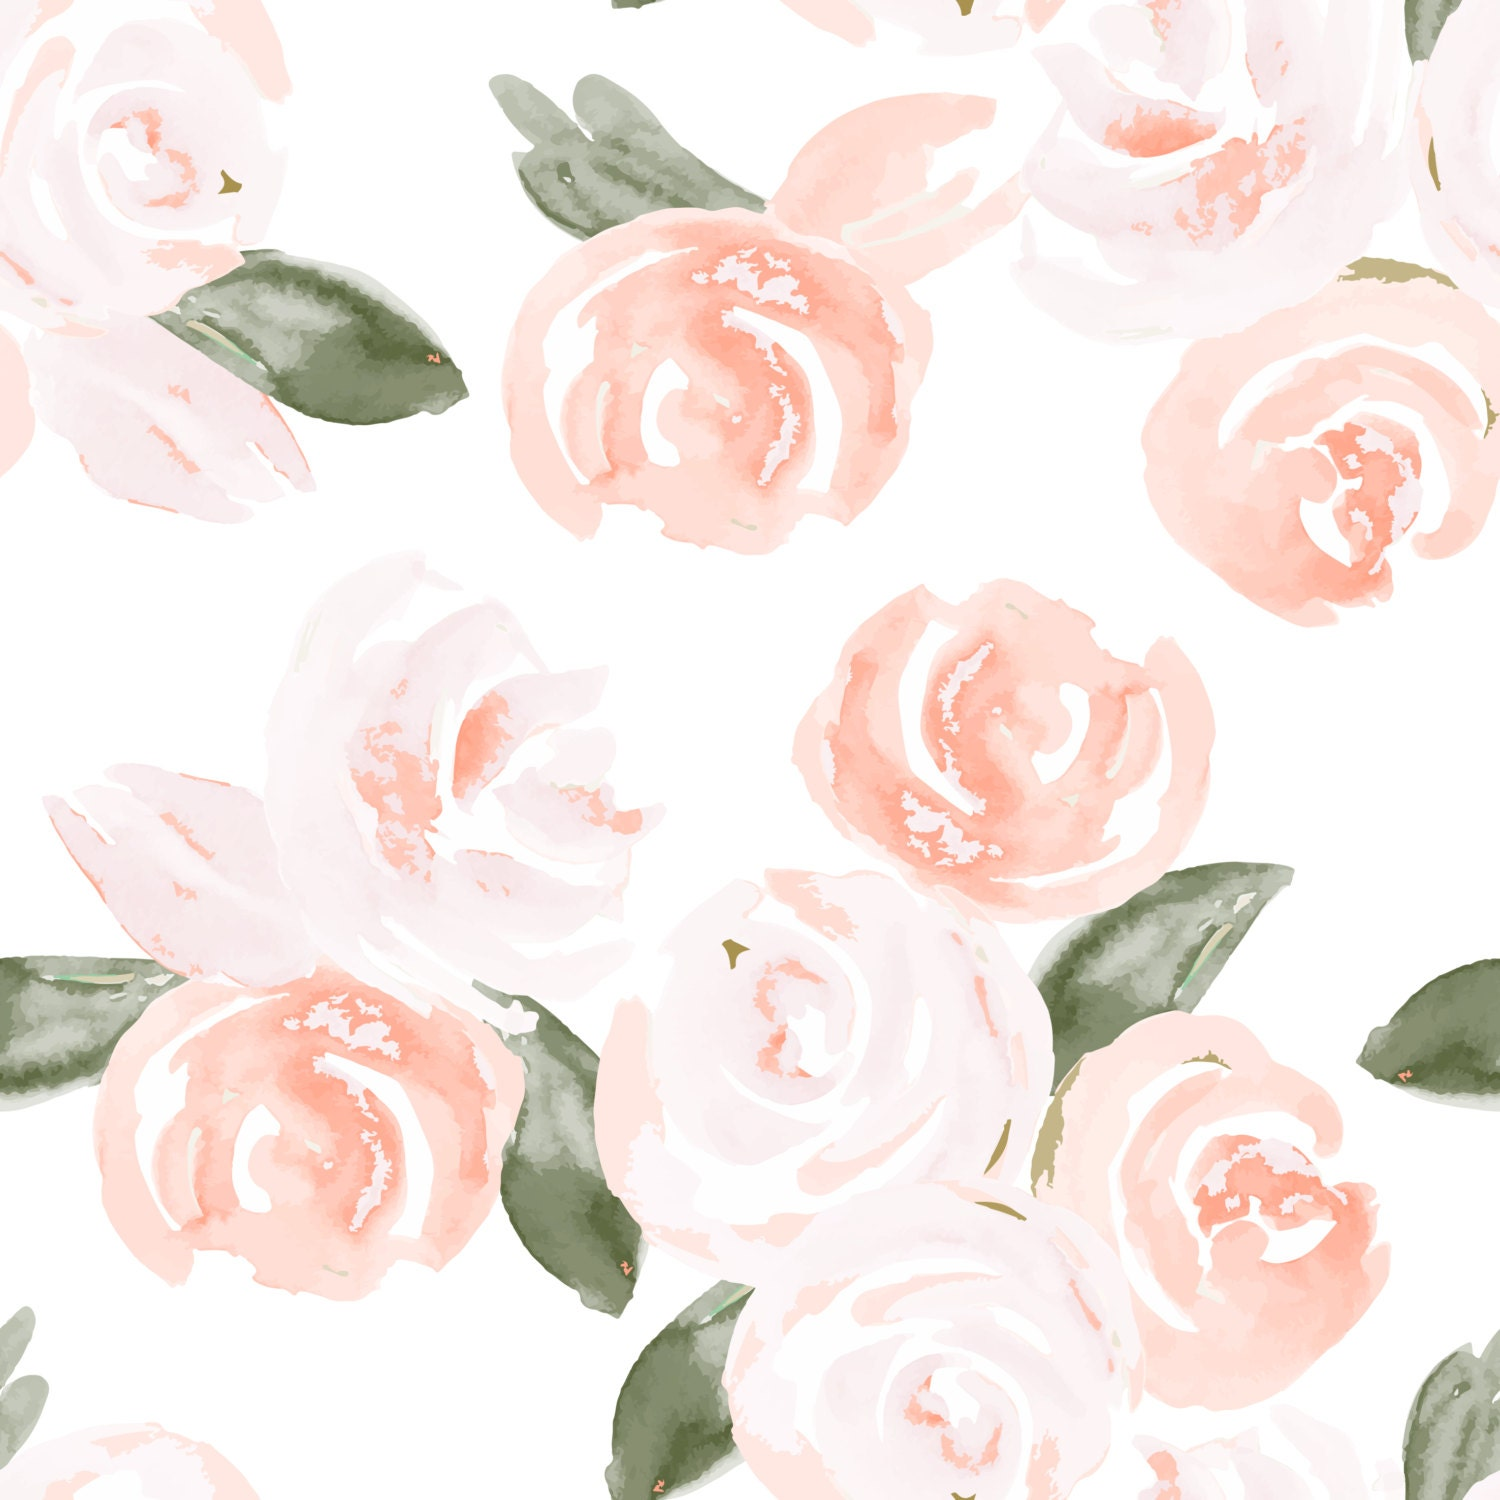 Computer Wallpaper Floral: Removable Wallpaper Floral Watercolor Design